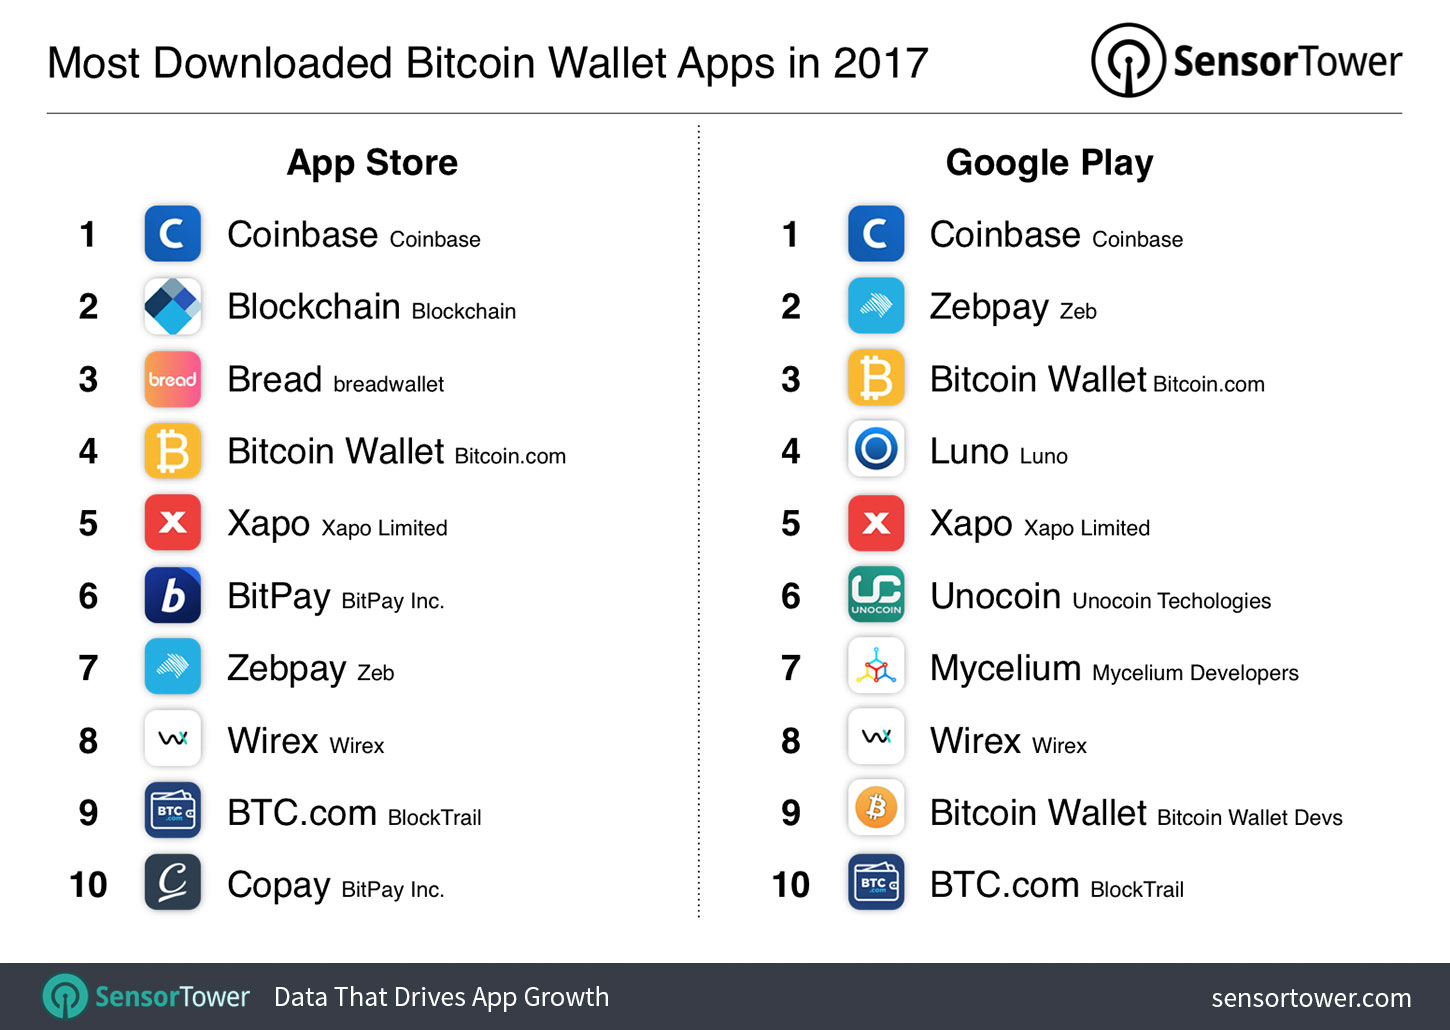 Top 10 bitcoin wallet apps by 2017 downloads to date bitcoin wallet app installs surpass 25 million since 2014, november downloads up 800% year-over-year - top bitcoin wallet apps - Bitcoin Wallet App Installs Surpass 25 Million Since 2014, November Downloads Up 800% Year-Over-Year